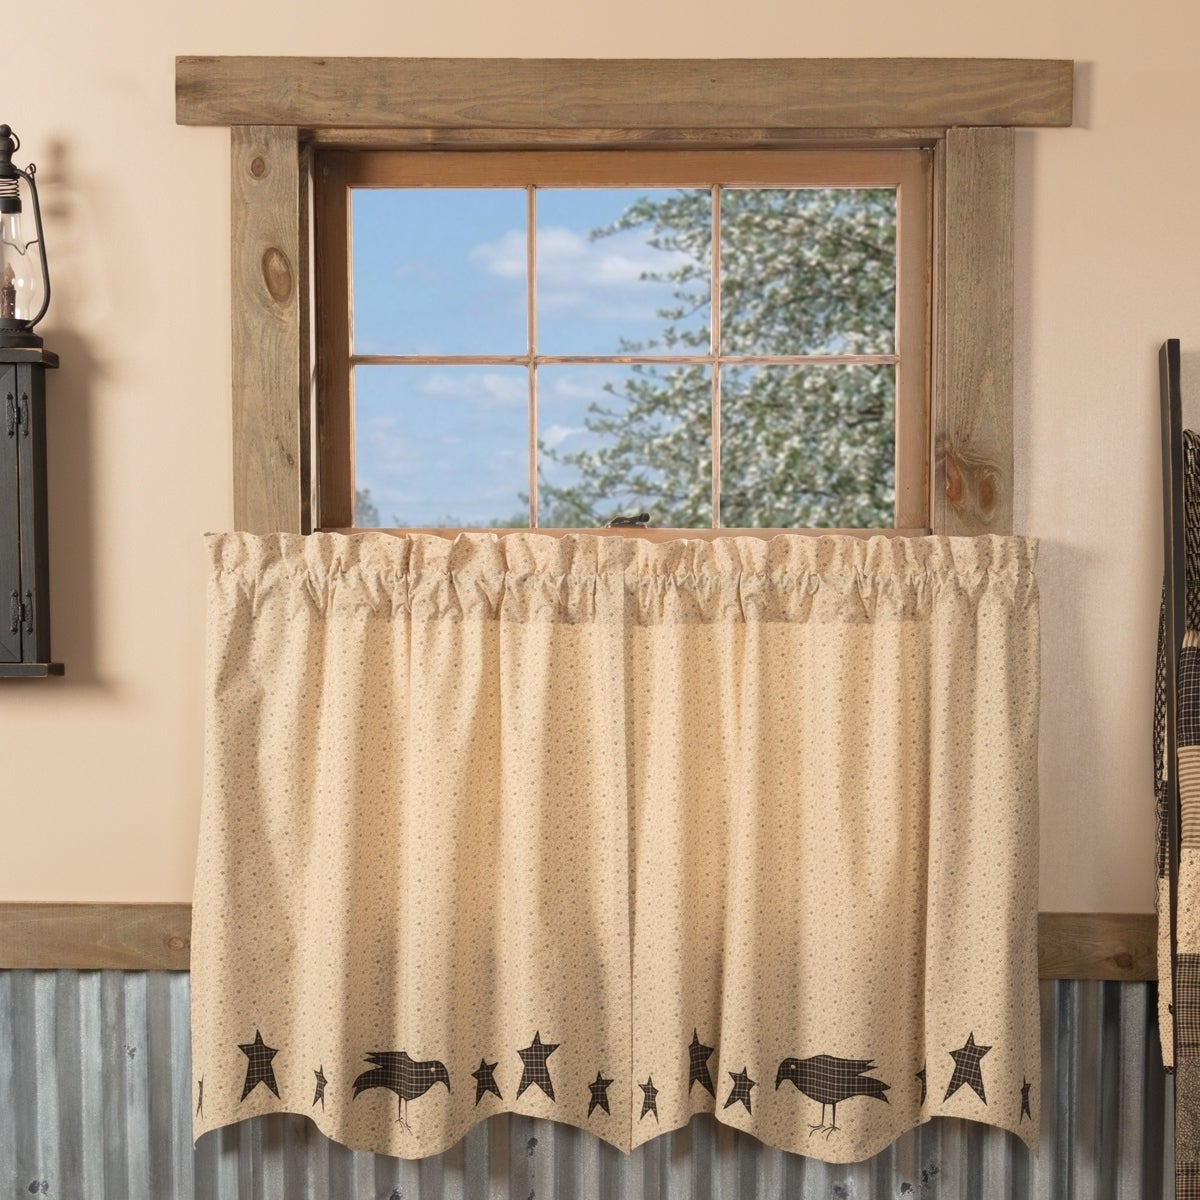 Tan Primitive Kitchen Curtains Vhc Kettle Grove Crow And Star Tier Pair Rod Pocket Cotton Star Appliqued Within 2020 Forest Valance And Tier Pair Curtains (View 13 of 20)